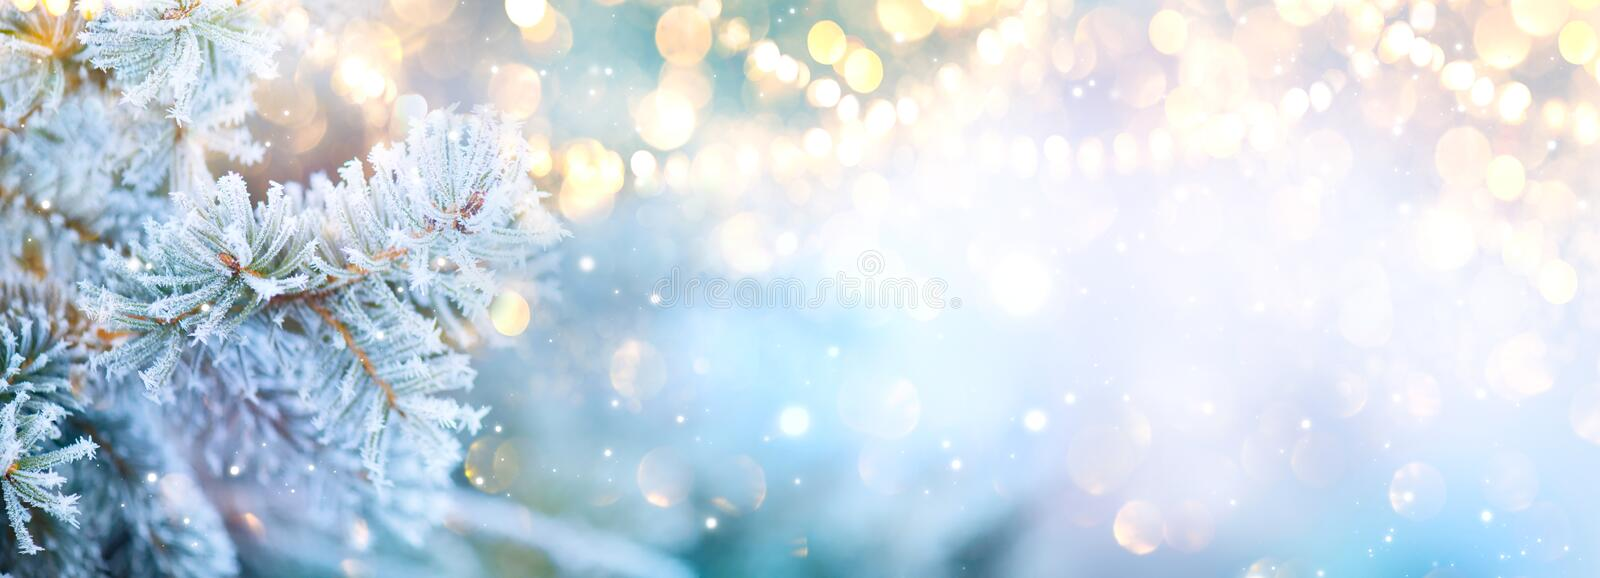 Christmas background. Xmas tree with snow decorated with garland lights, holiday festive background. Widescreen frame backdrop. New year Winter art design royalty free stock photo